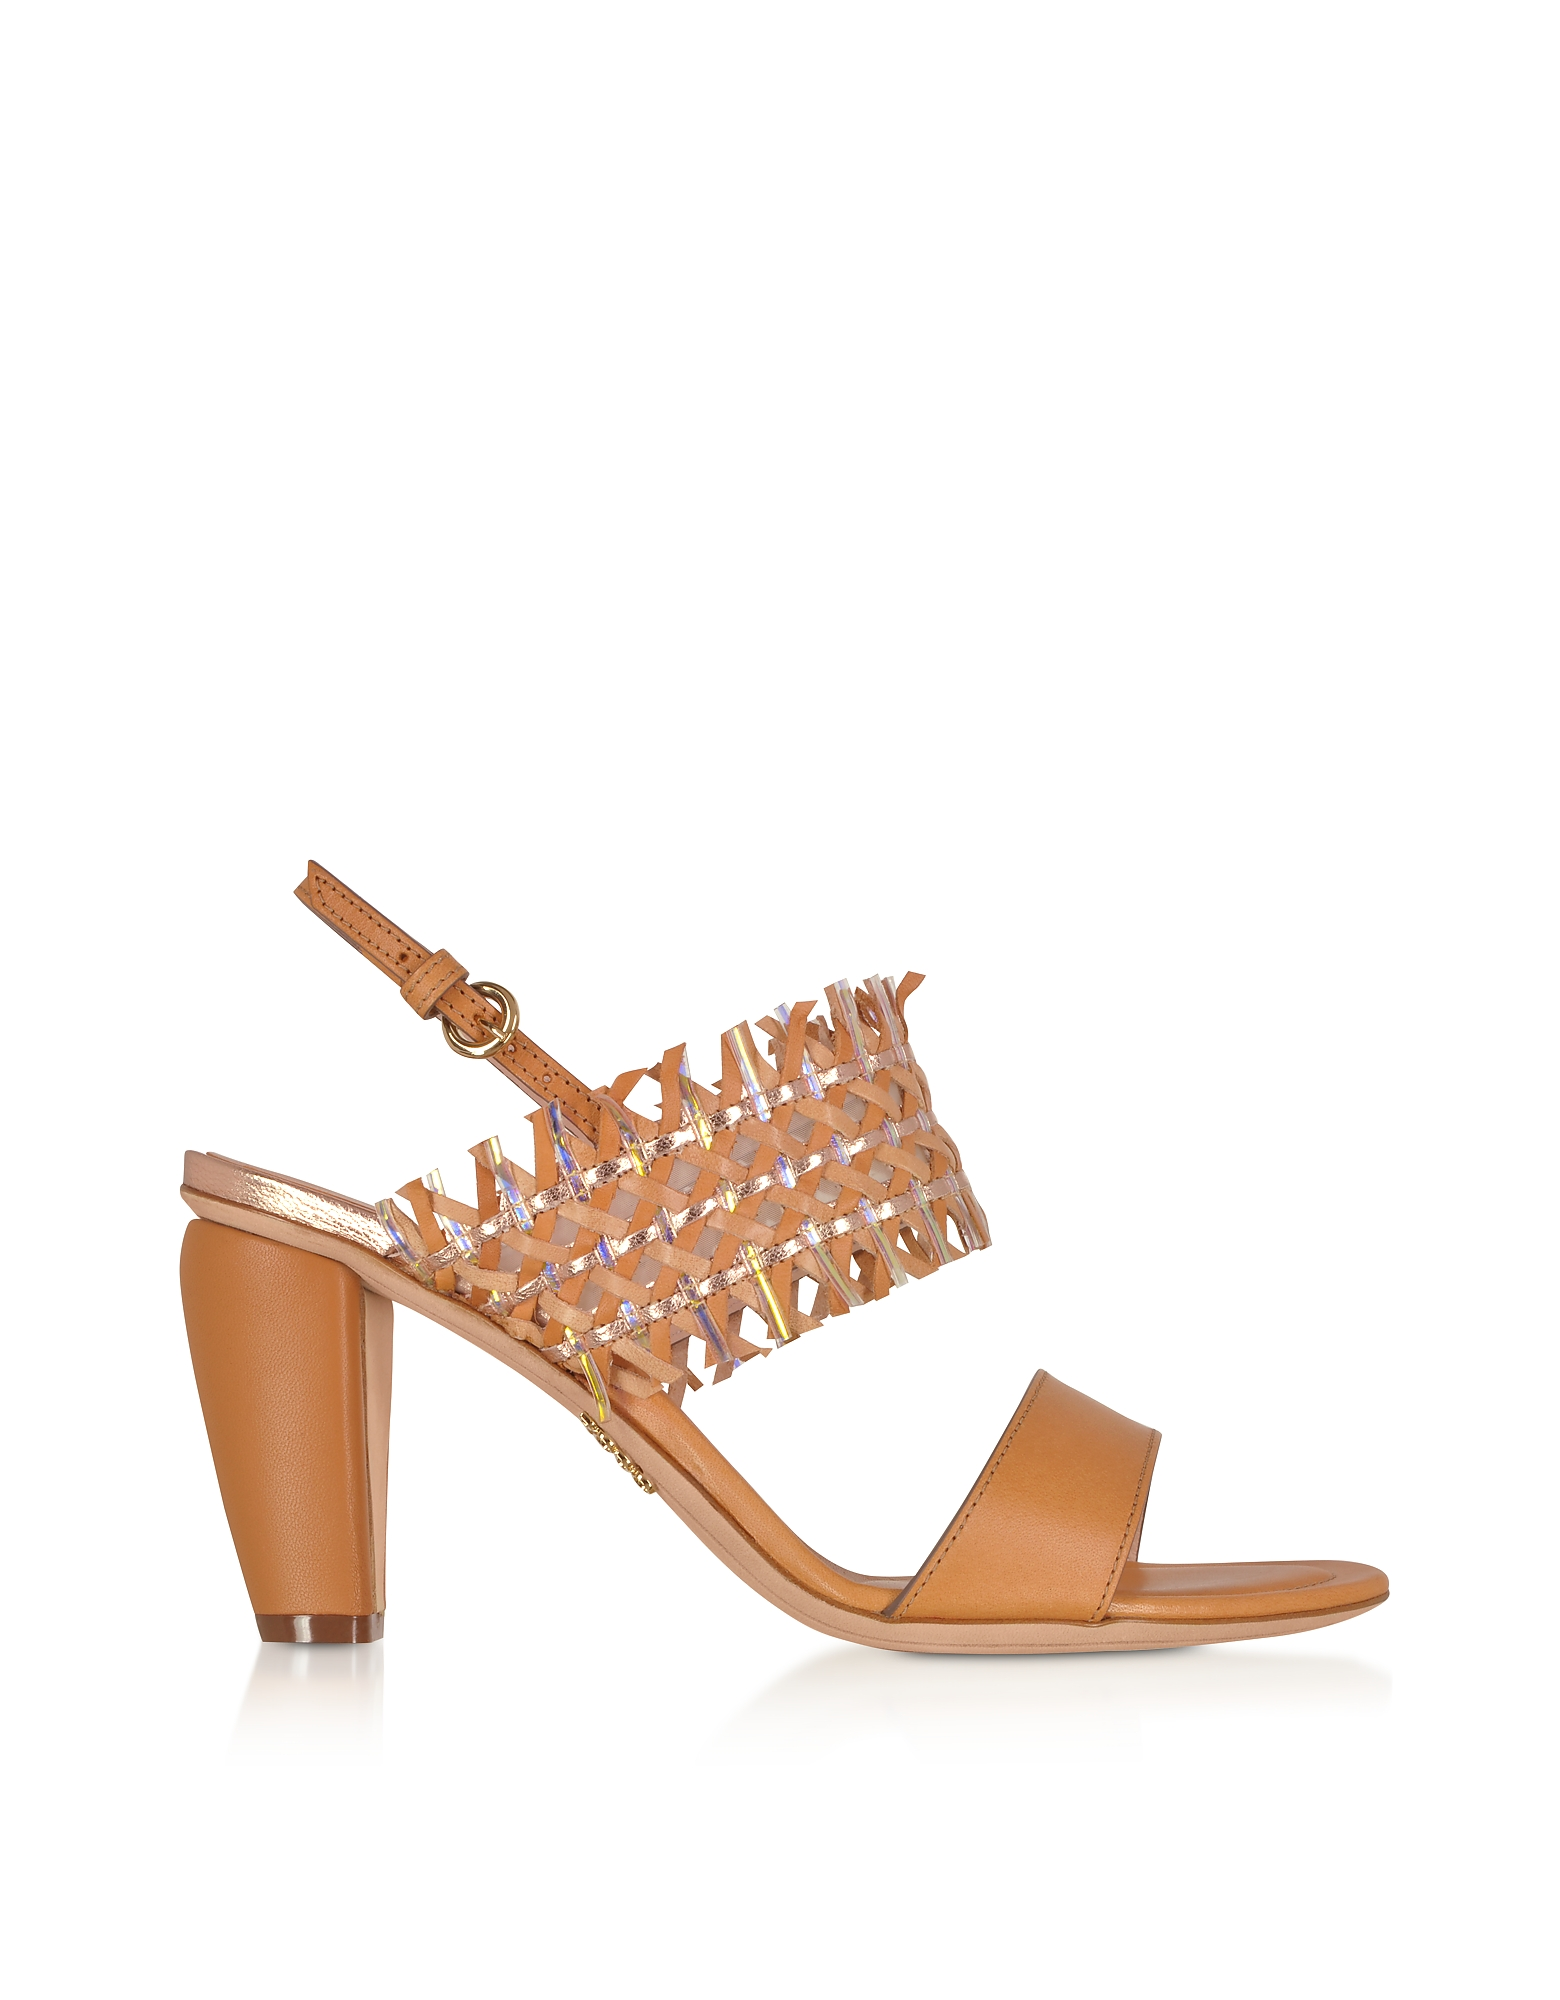 Rodo Sandals CUOIO WOVEN LEATHER WOMEN'S SANDALS